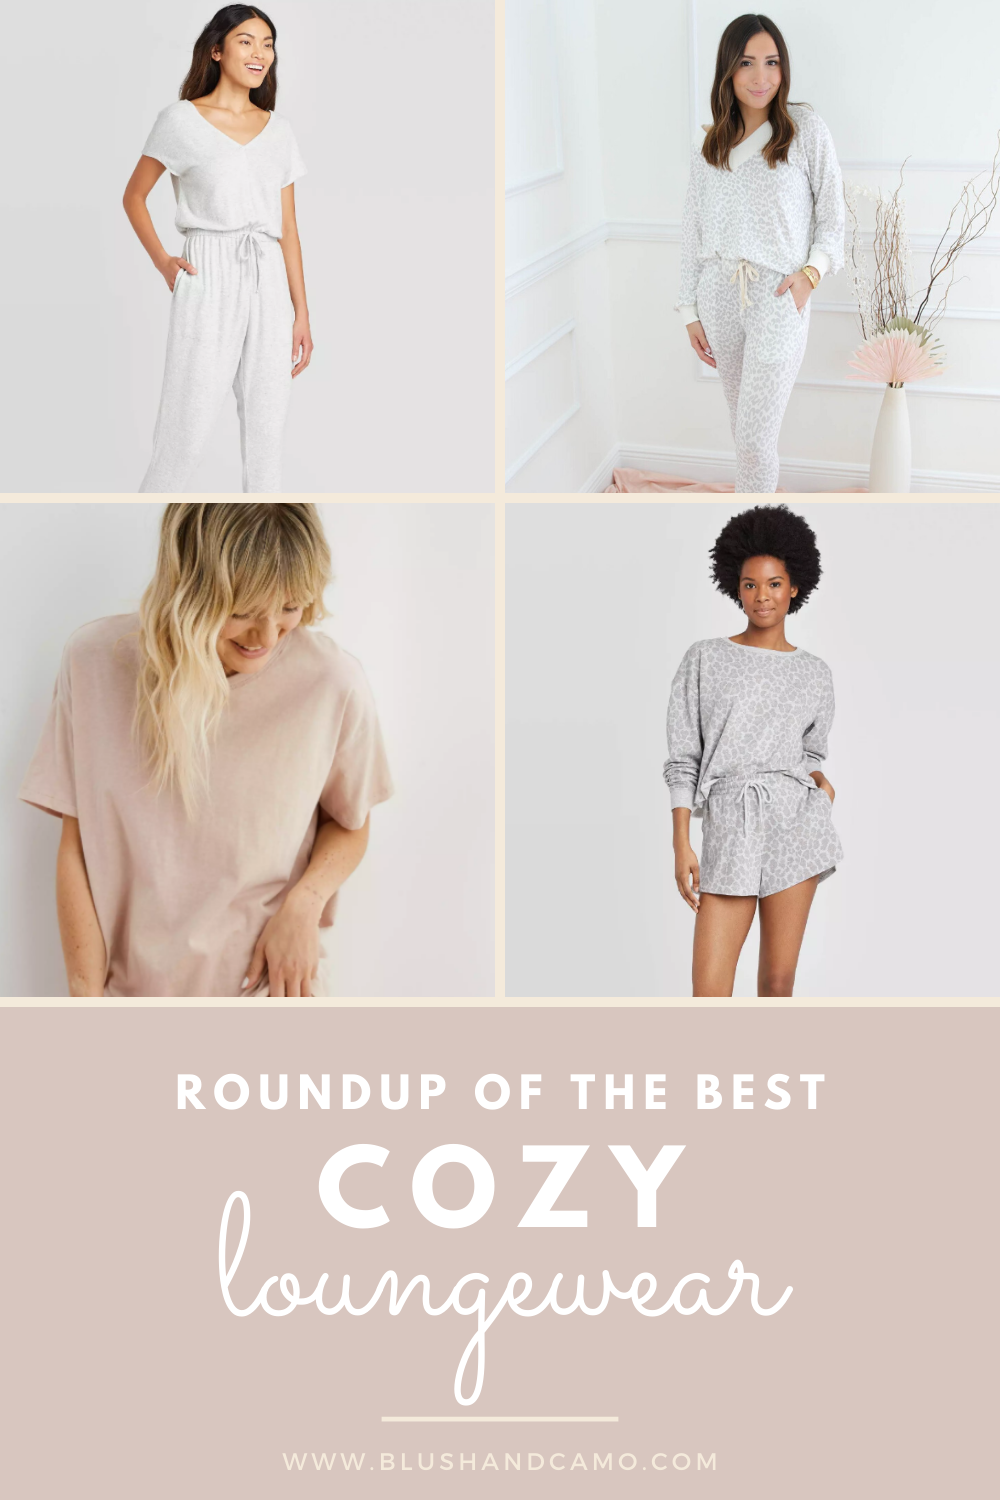 The Cutest Loungewear For Social Distancing Blush Camo In 2020 Lounge Wear Outfits Cozy Outfit [ 1500 x 1000 Pixel ]